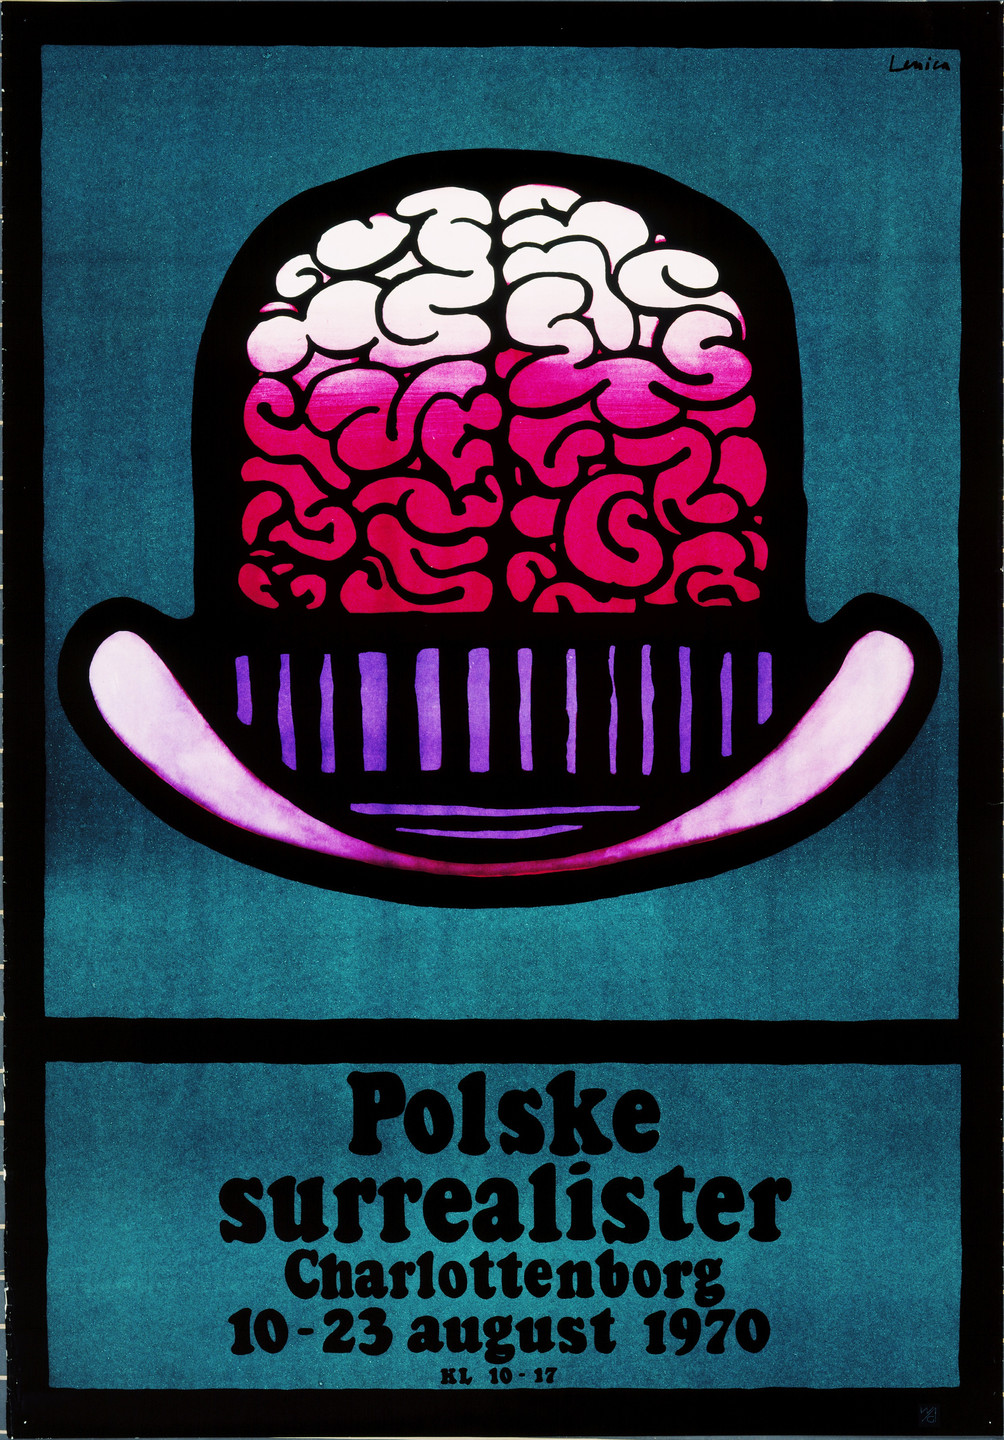 Jan Lenica. Polske Surrealister (Polish Surrealists) (Poster for a Berlin exhibition of Polish Surrealist art). 1970